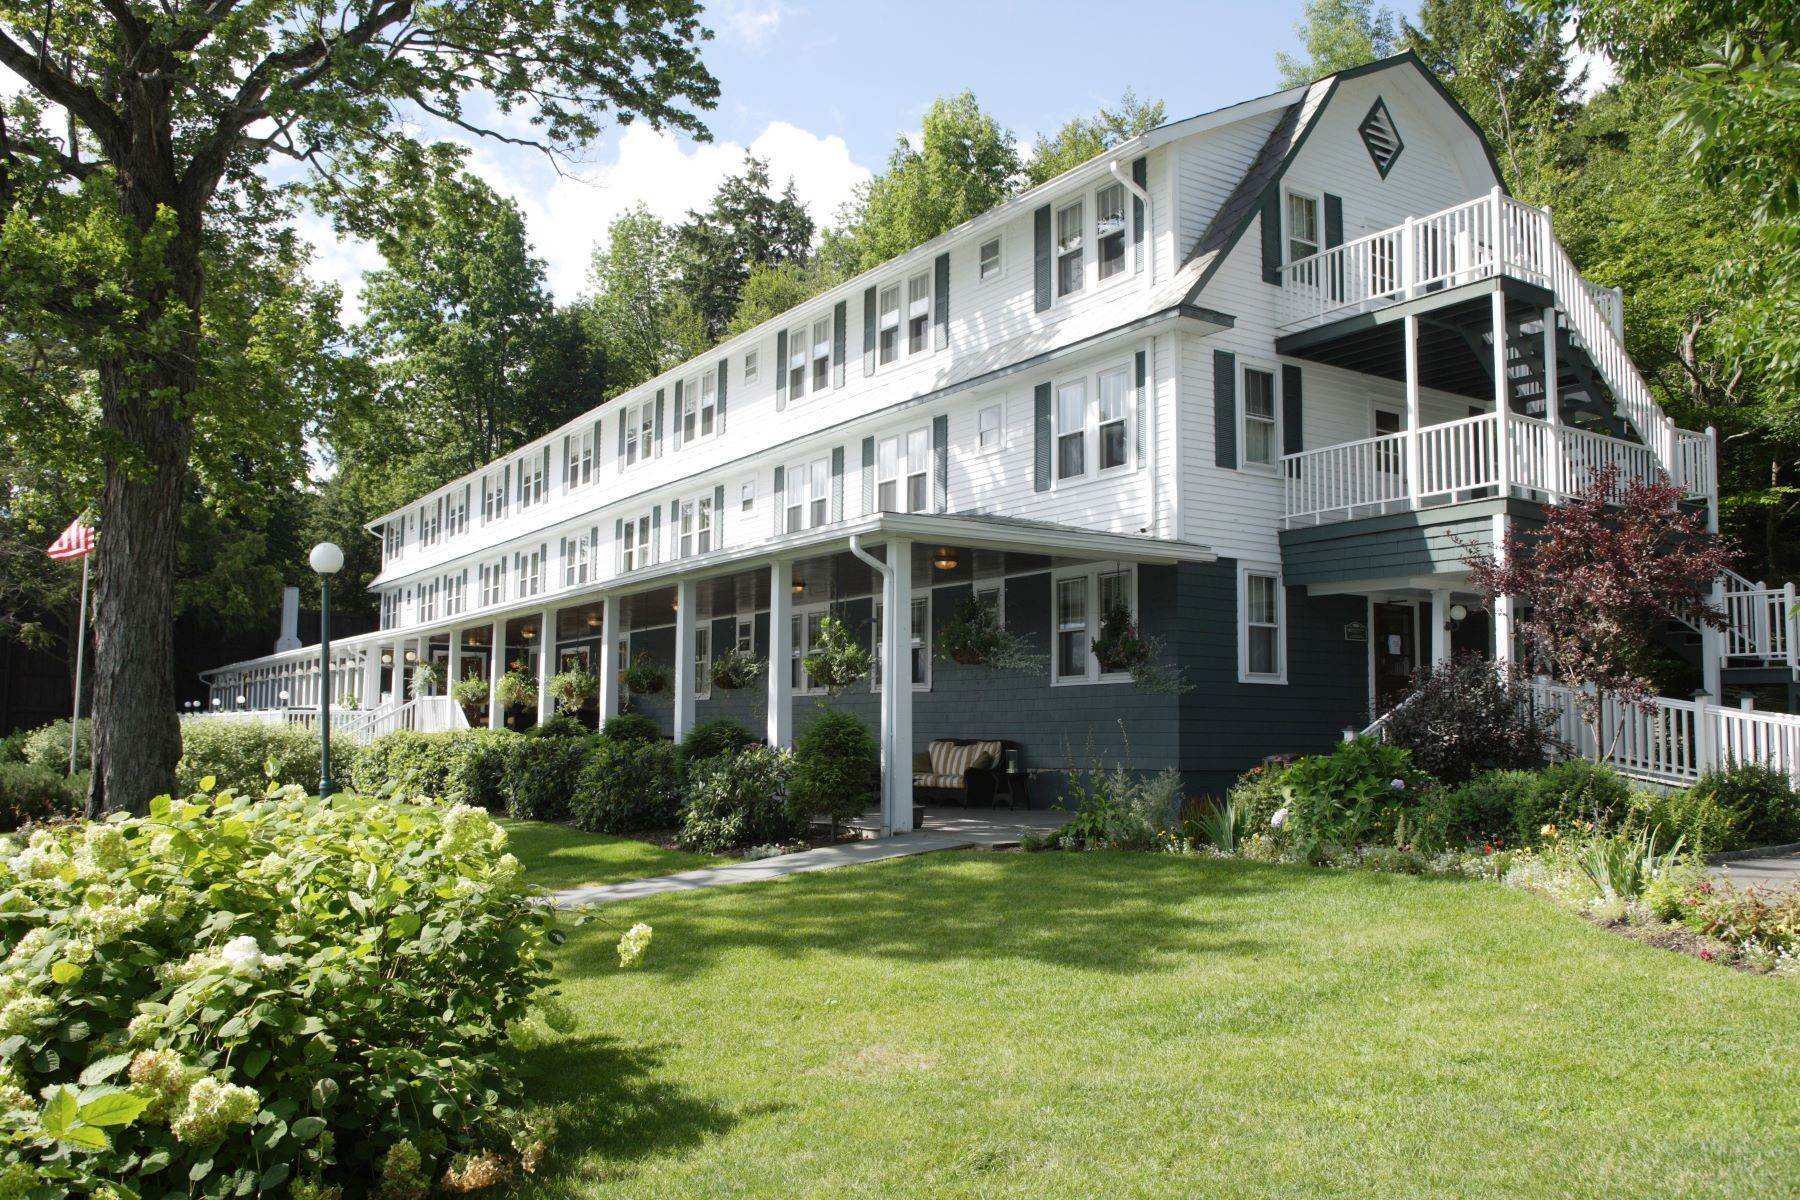 Single Family Homes for Sale at Chestnut Inn on Oquaga Lake 505 Oquaga Lake Road Sanford, New York 13754 United States